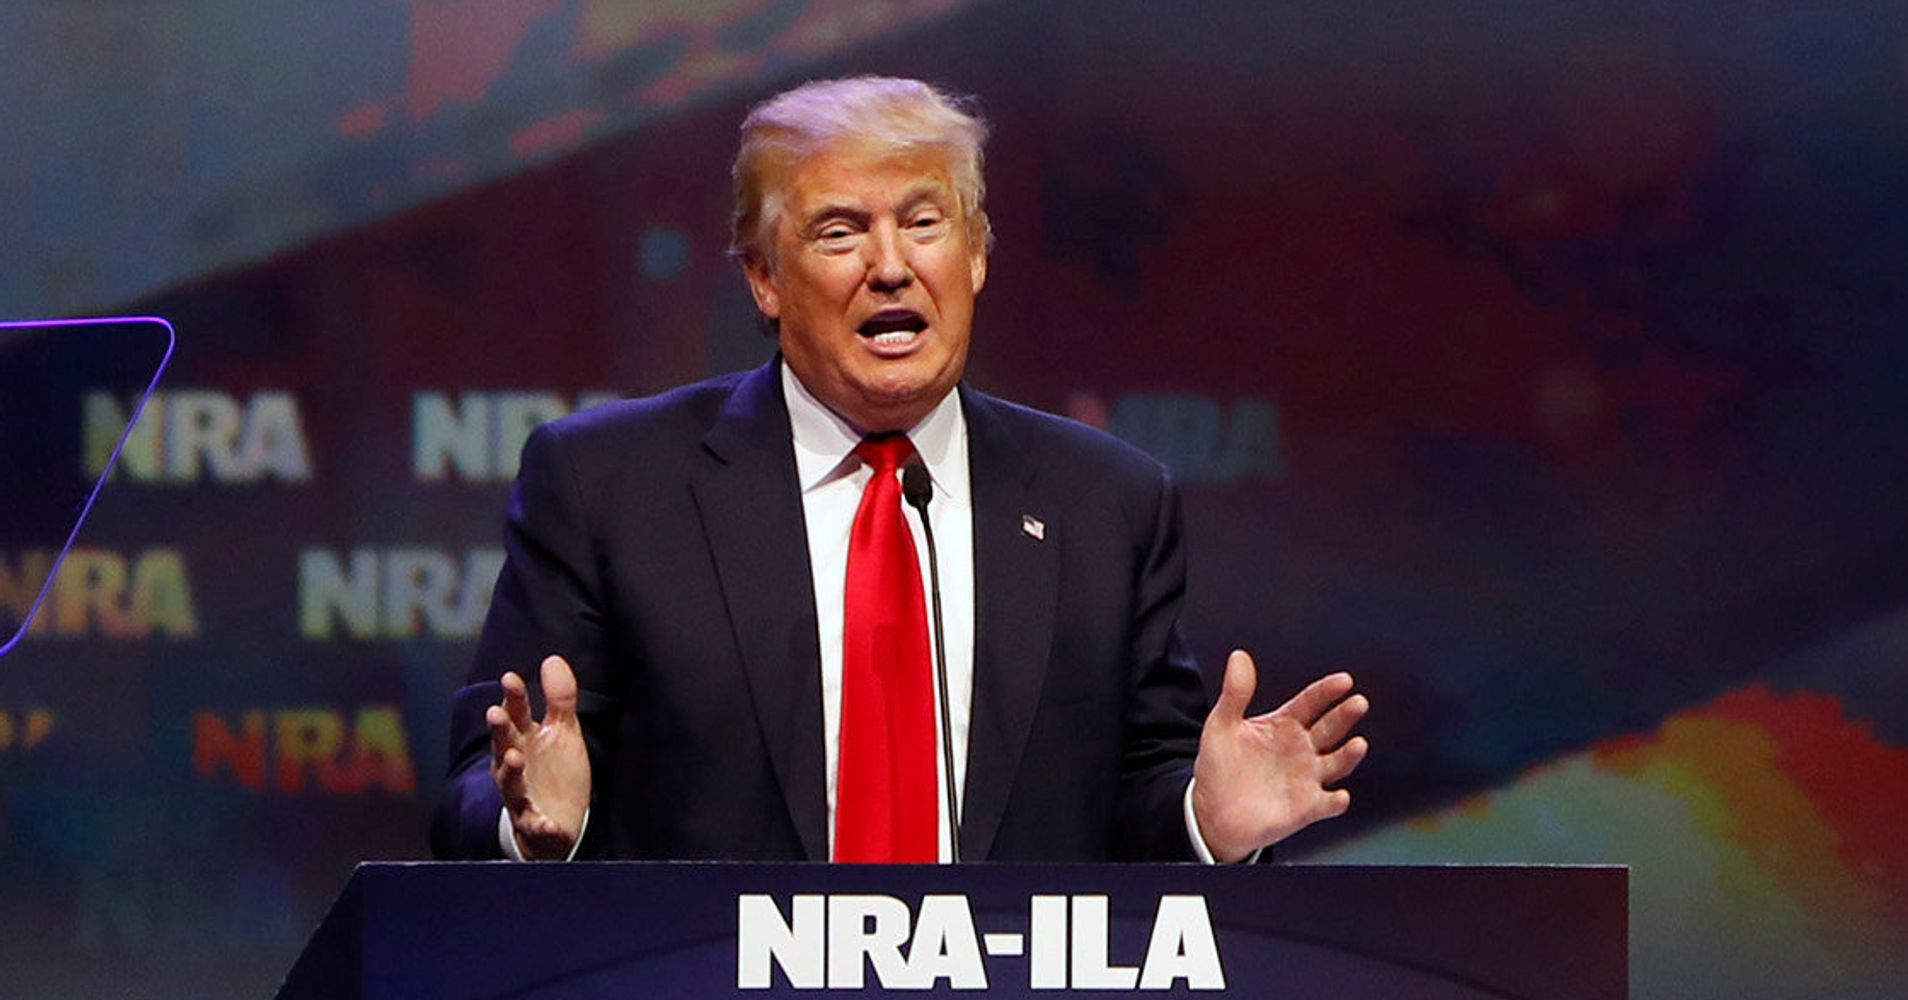 Trump's Budget Cuts Millions Of Dollars From Gun Background Check System